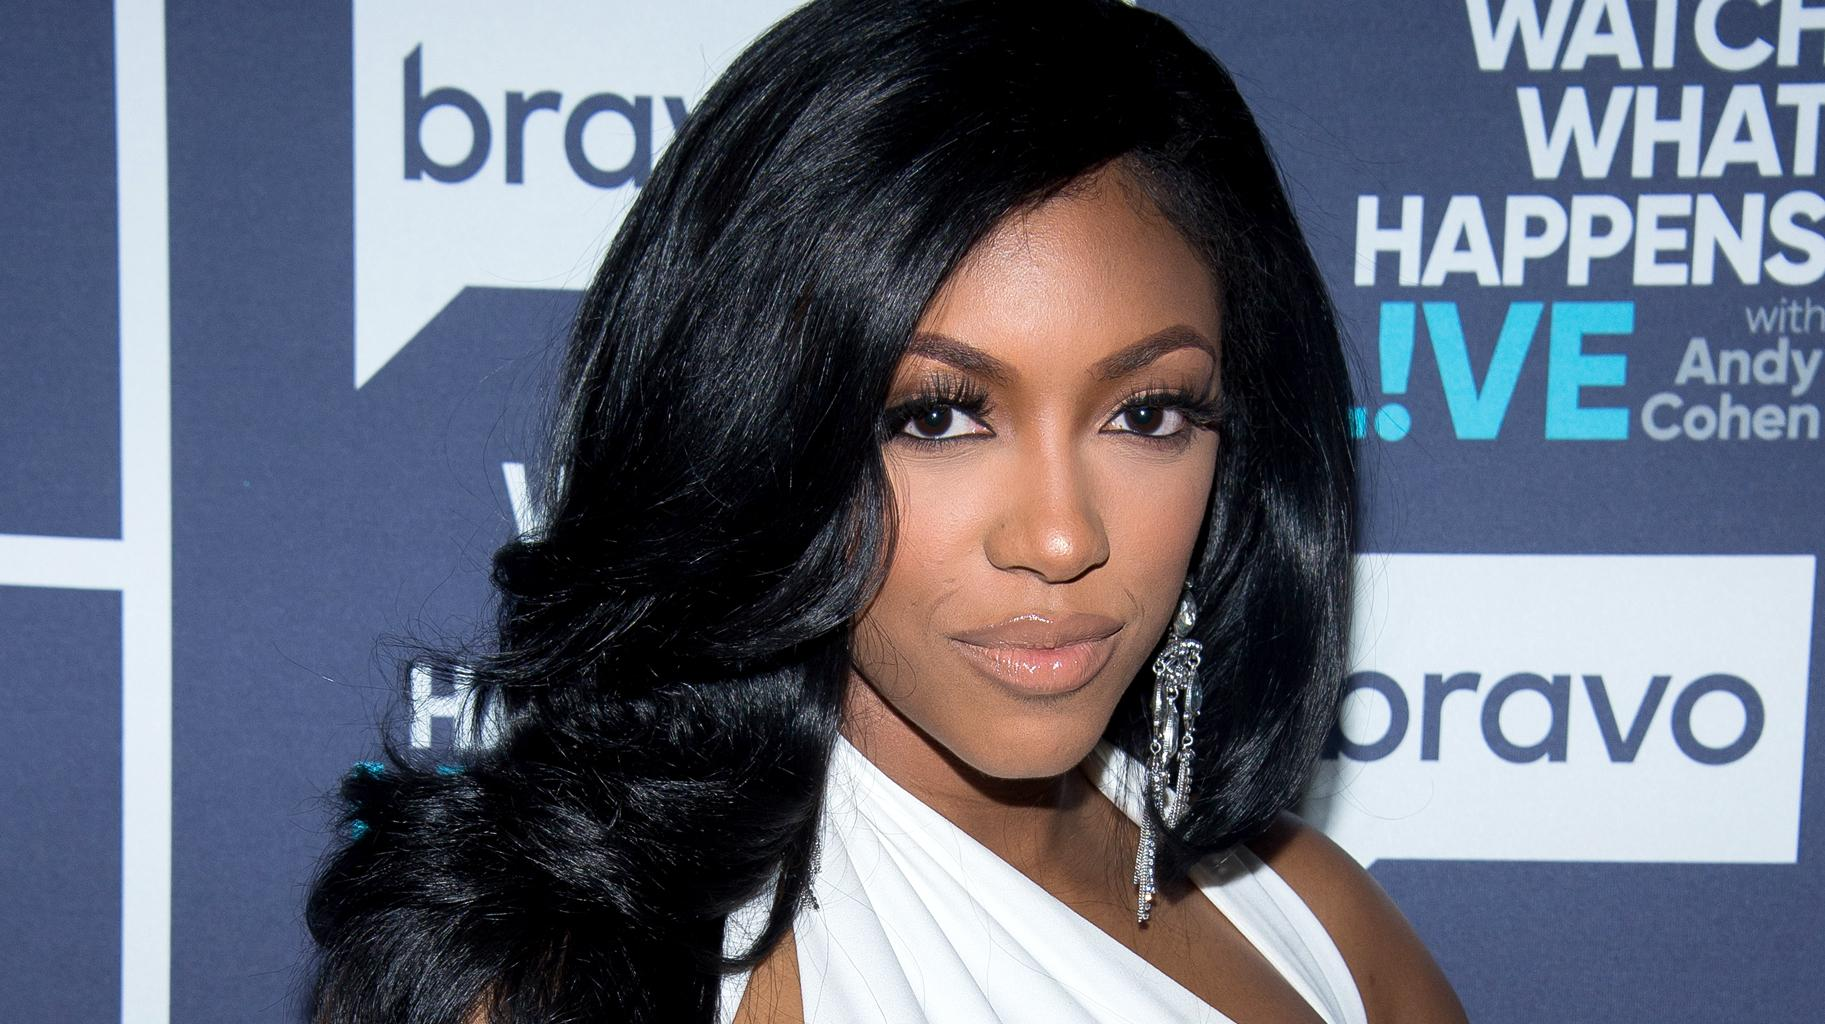 #FreePorsha: Porsha Williams Has Been Arrested While Protesting For Breonna Taylor And Fans Call For Her To Be Freed